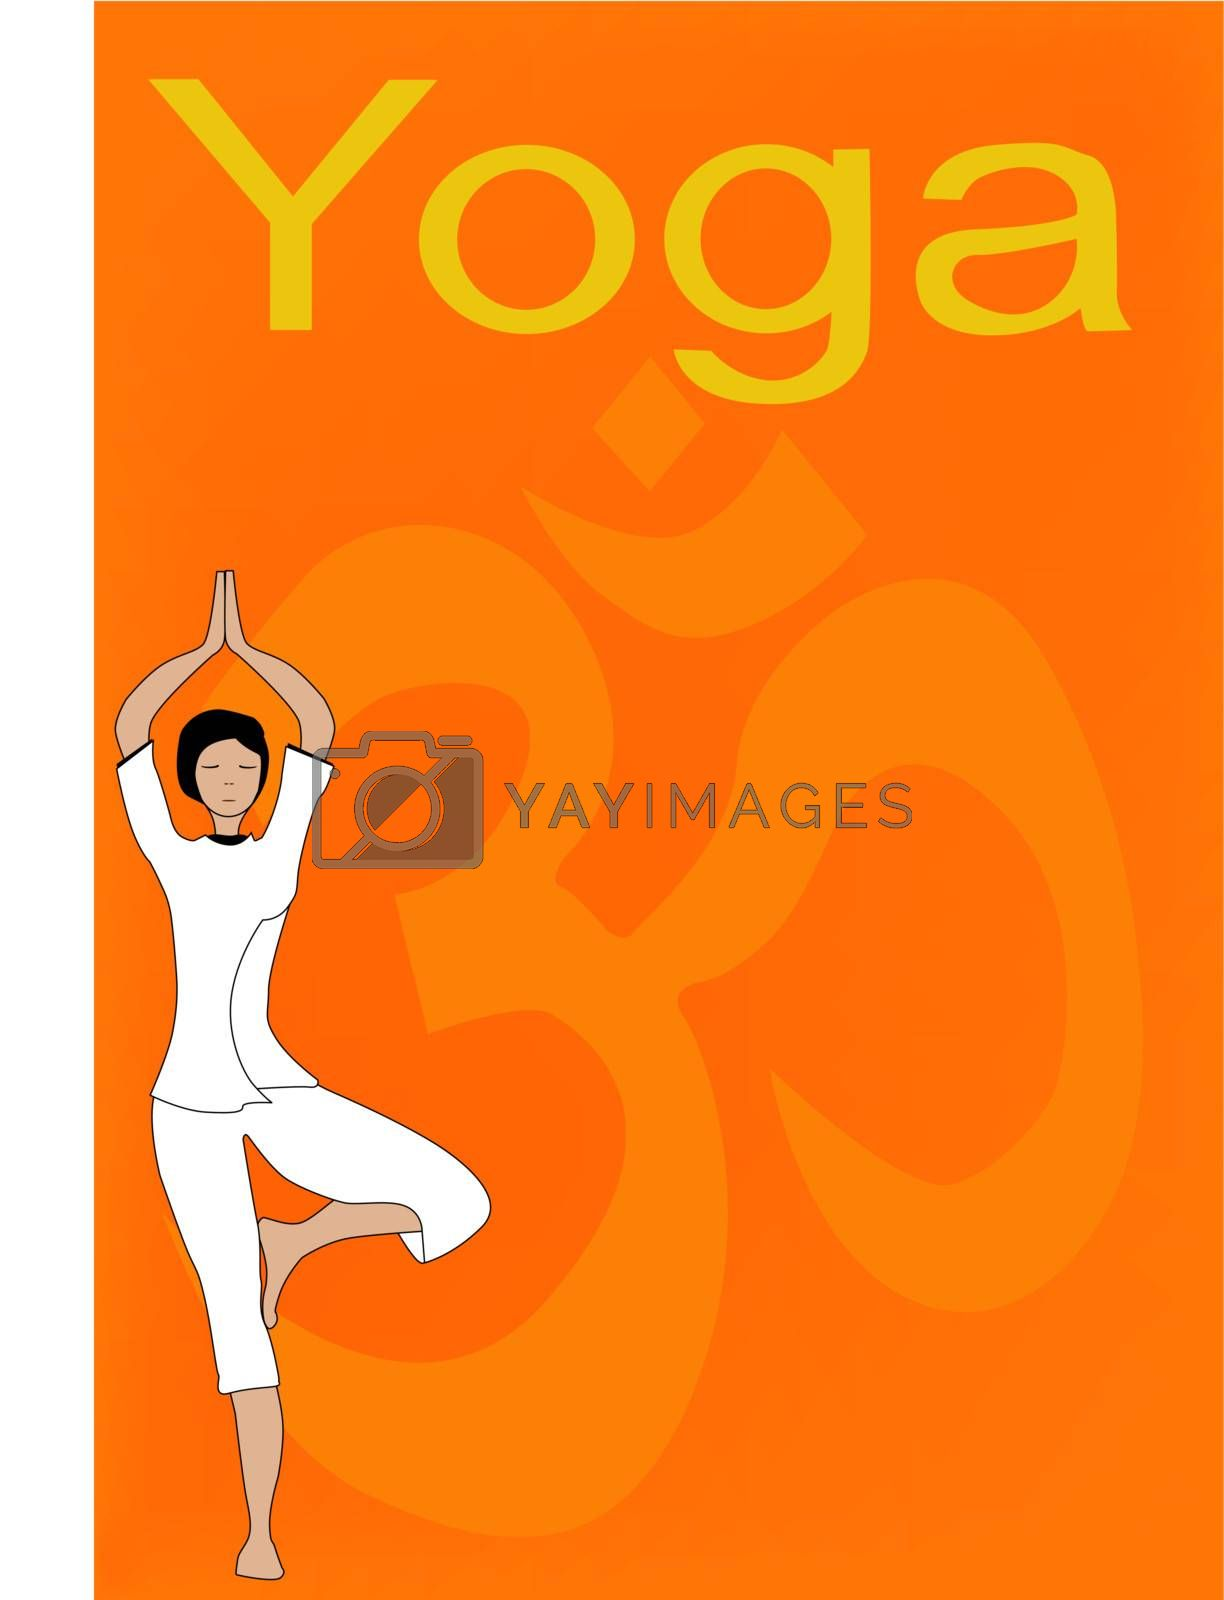 A text ready poster for a yoga event or venue eith the traditional 'om, sign in the background.